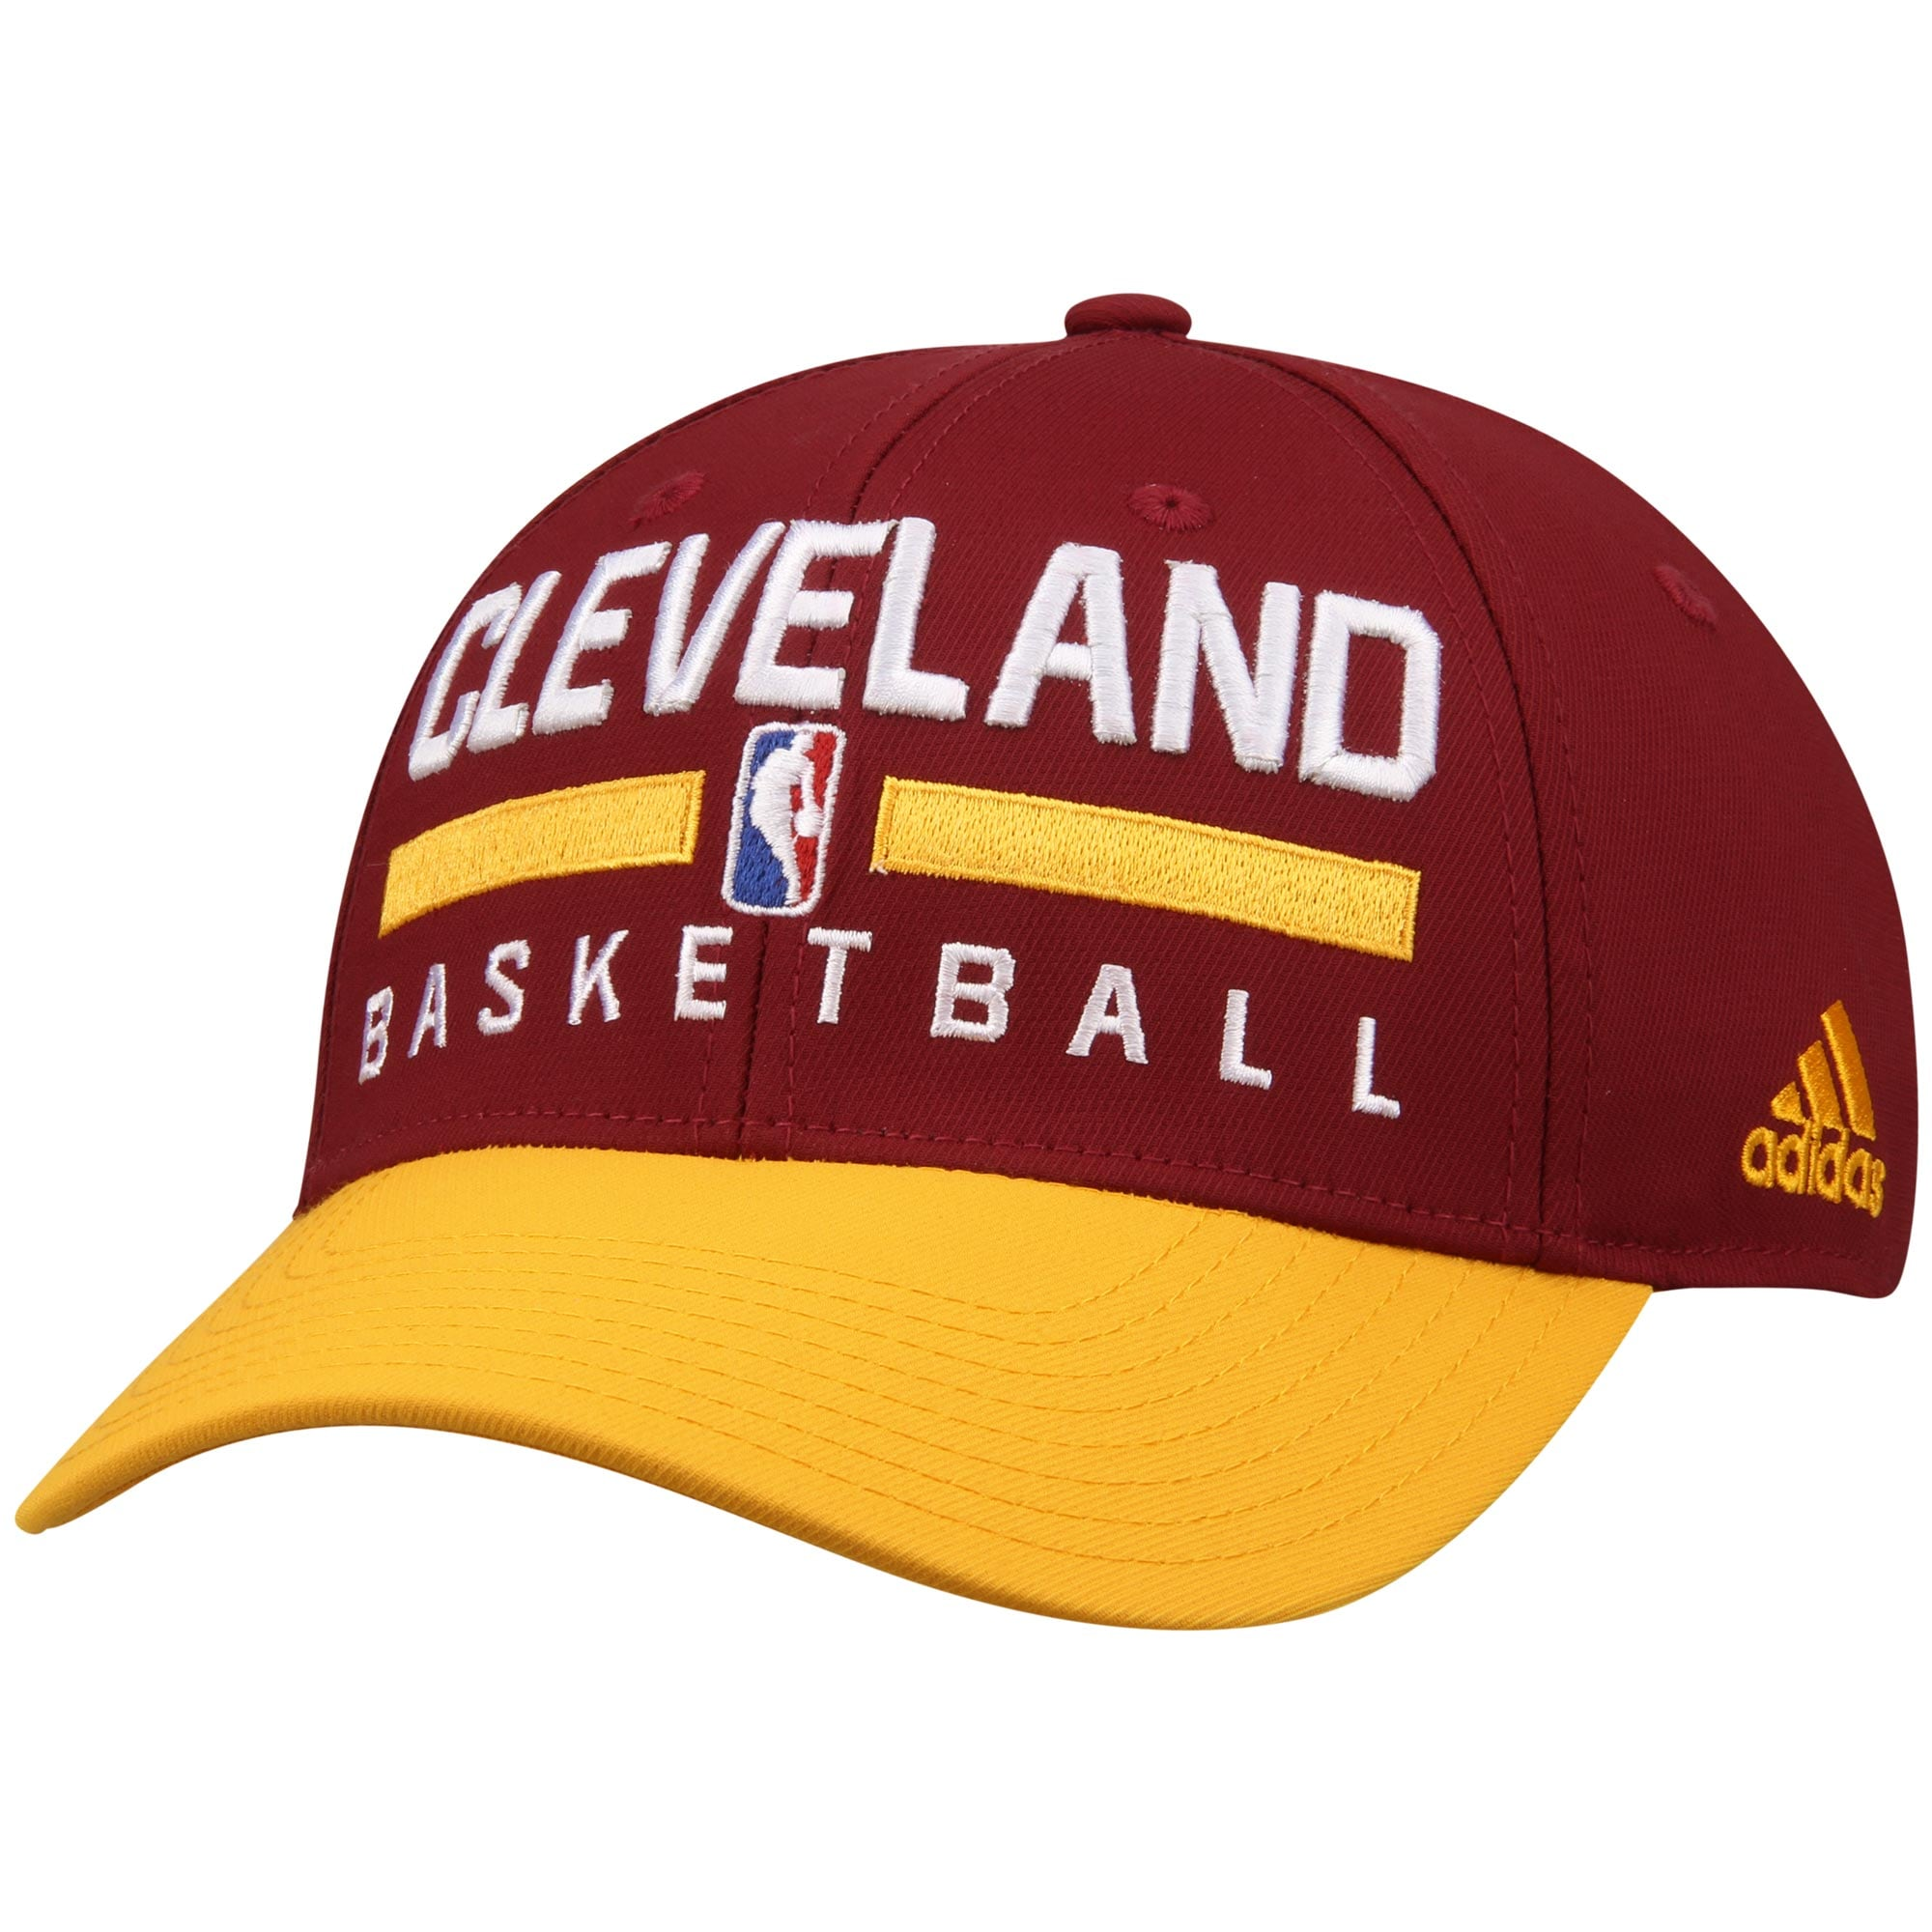 Cleveland Cavaliers adidas 2-Tone Practice Structured Snapback Hat - Maroon/Yellow